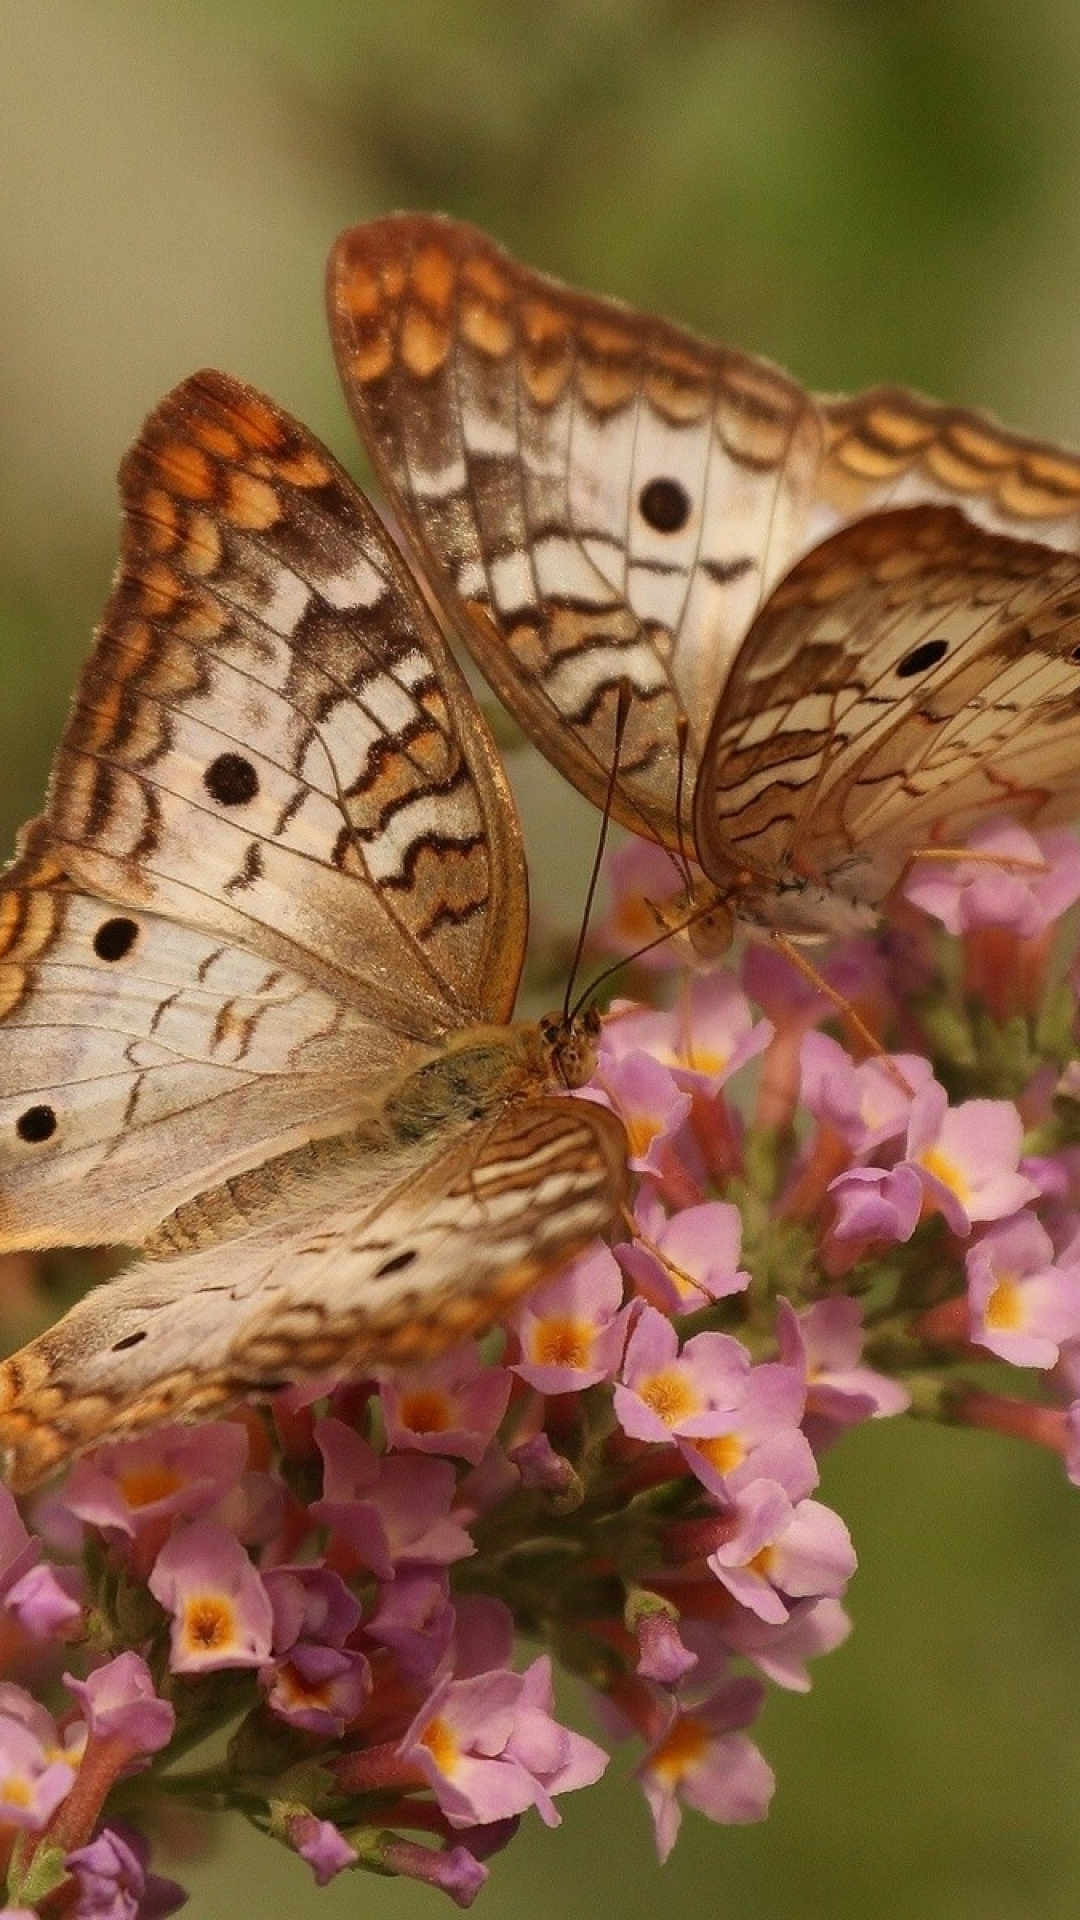 butterfly-couple-flowers-wings-patterns-wallpaper-wpc5803108